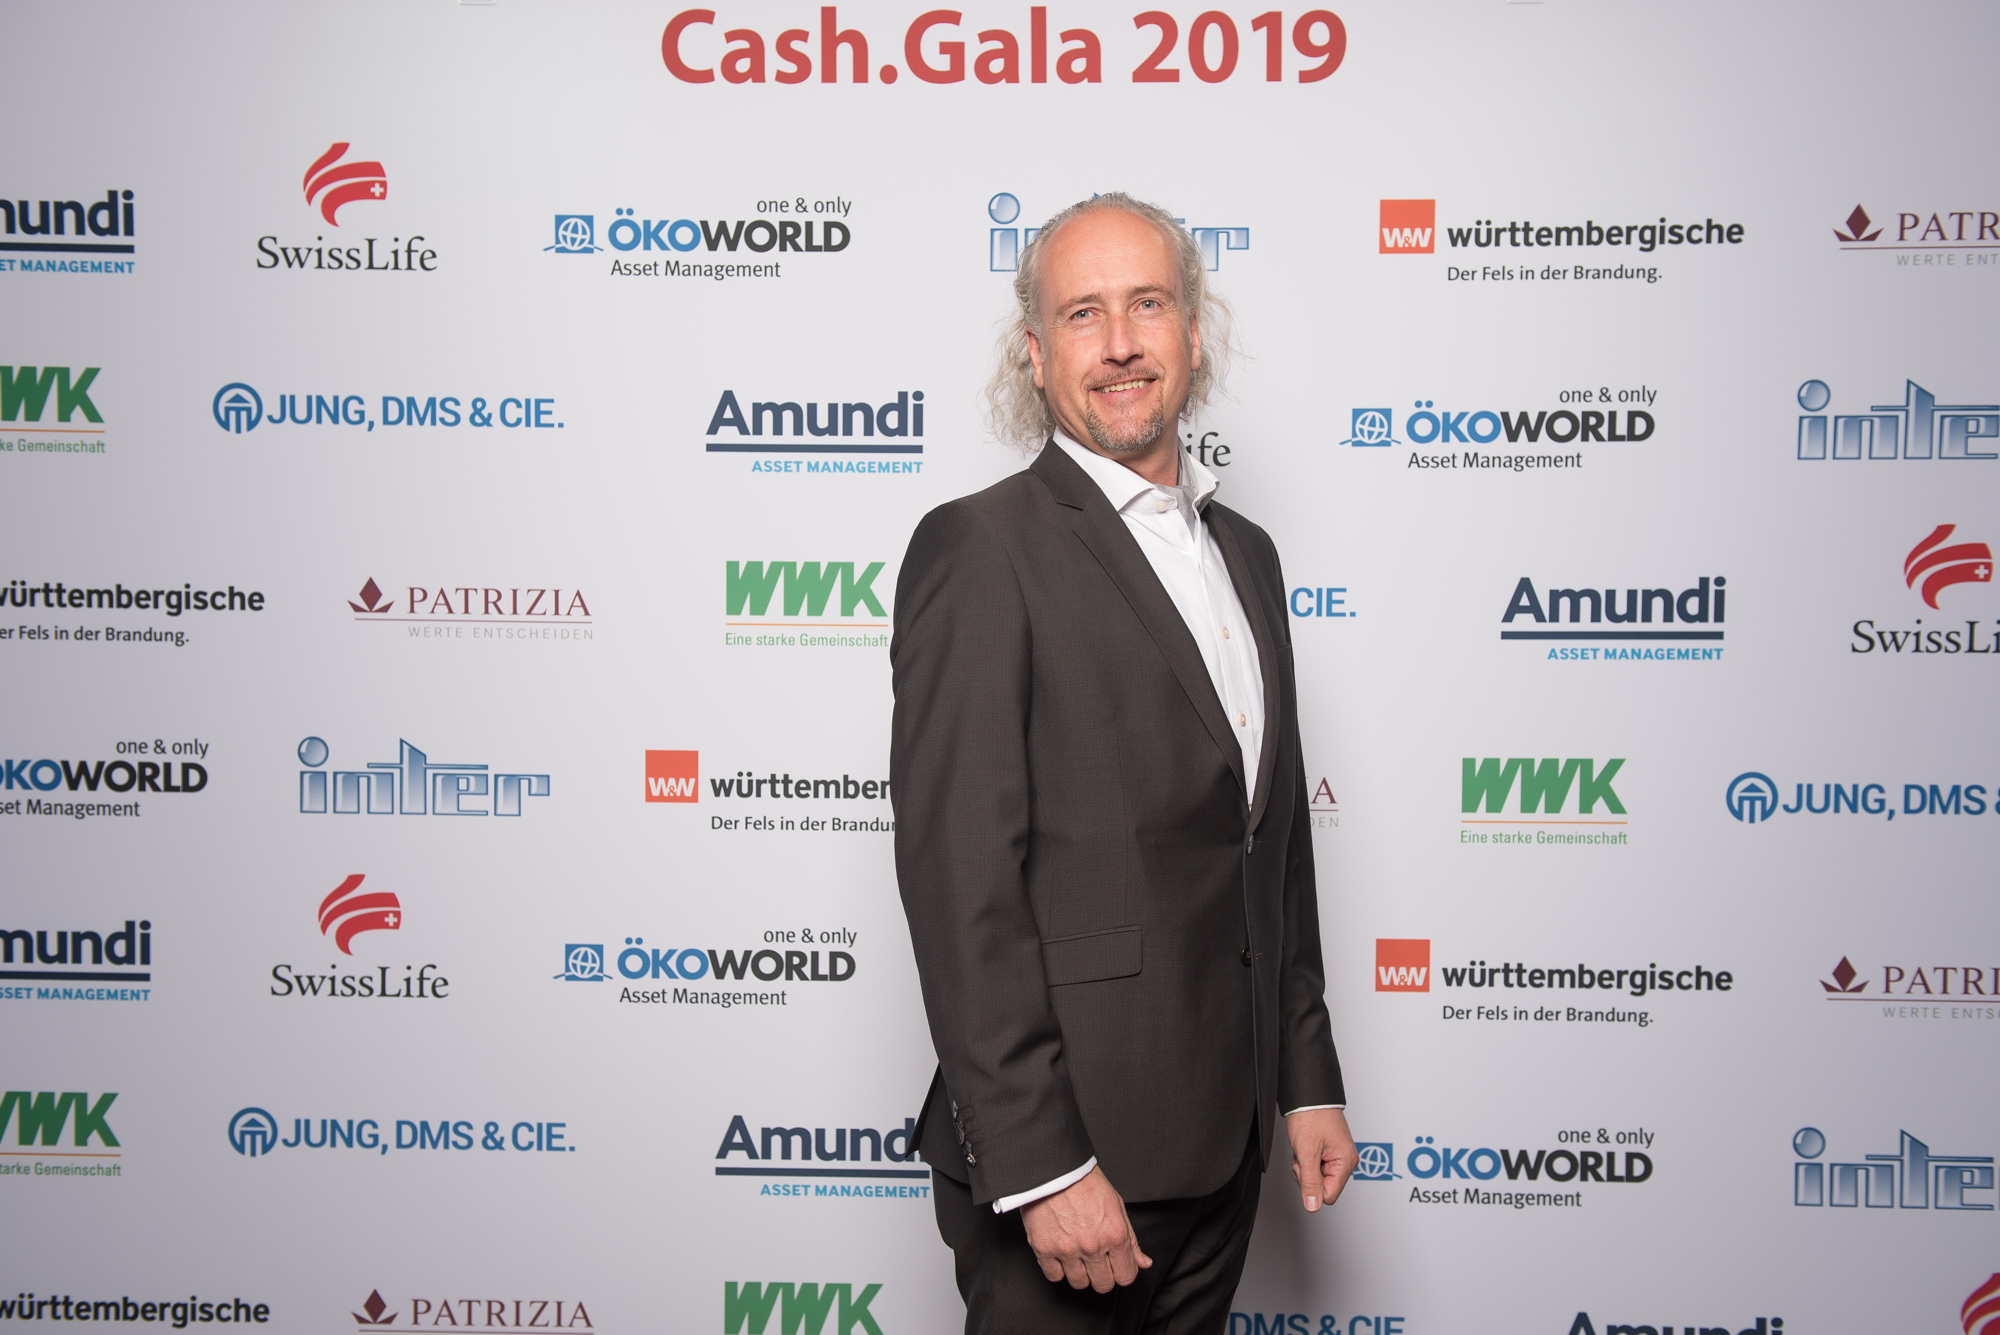 CashGala 2019 0036 AM DSC7047 in Cash.Gala 2019